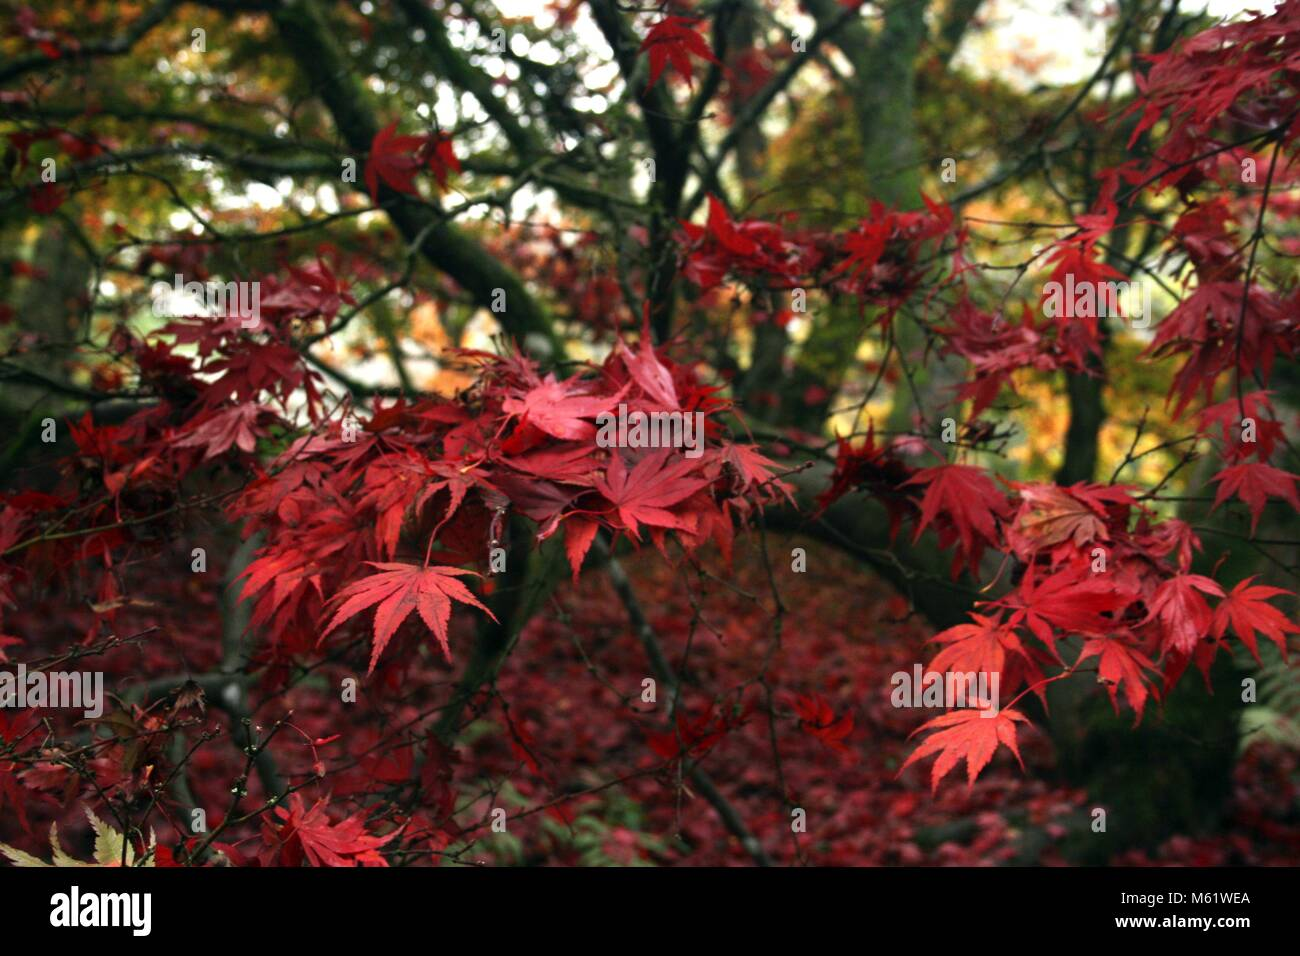 red leaves in autumn - Stock Image